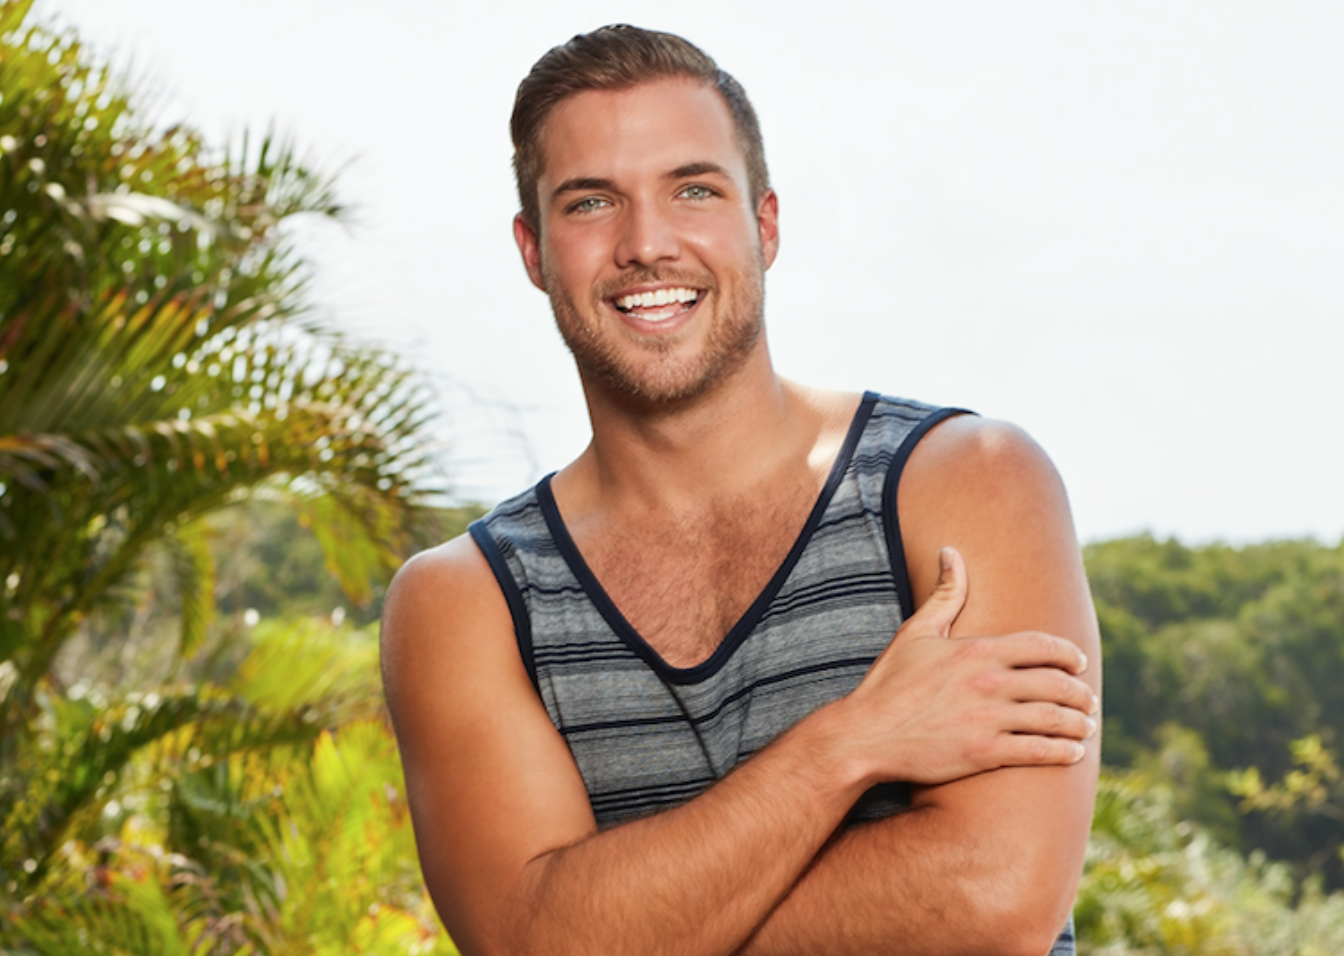 Who Does Jordan Kimball Choose on 'Bachelor in Paradise'?